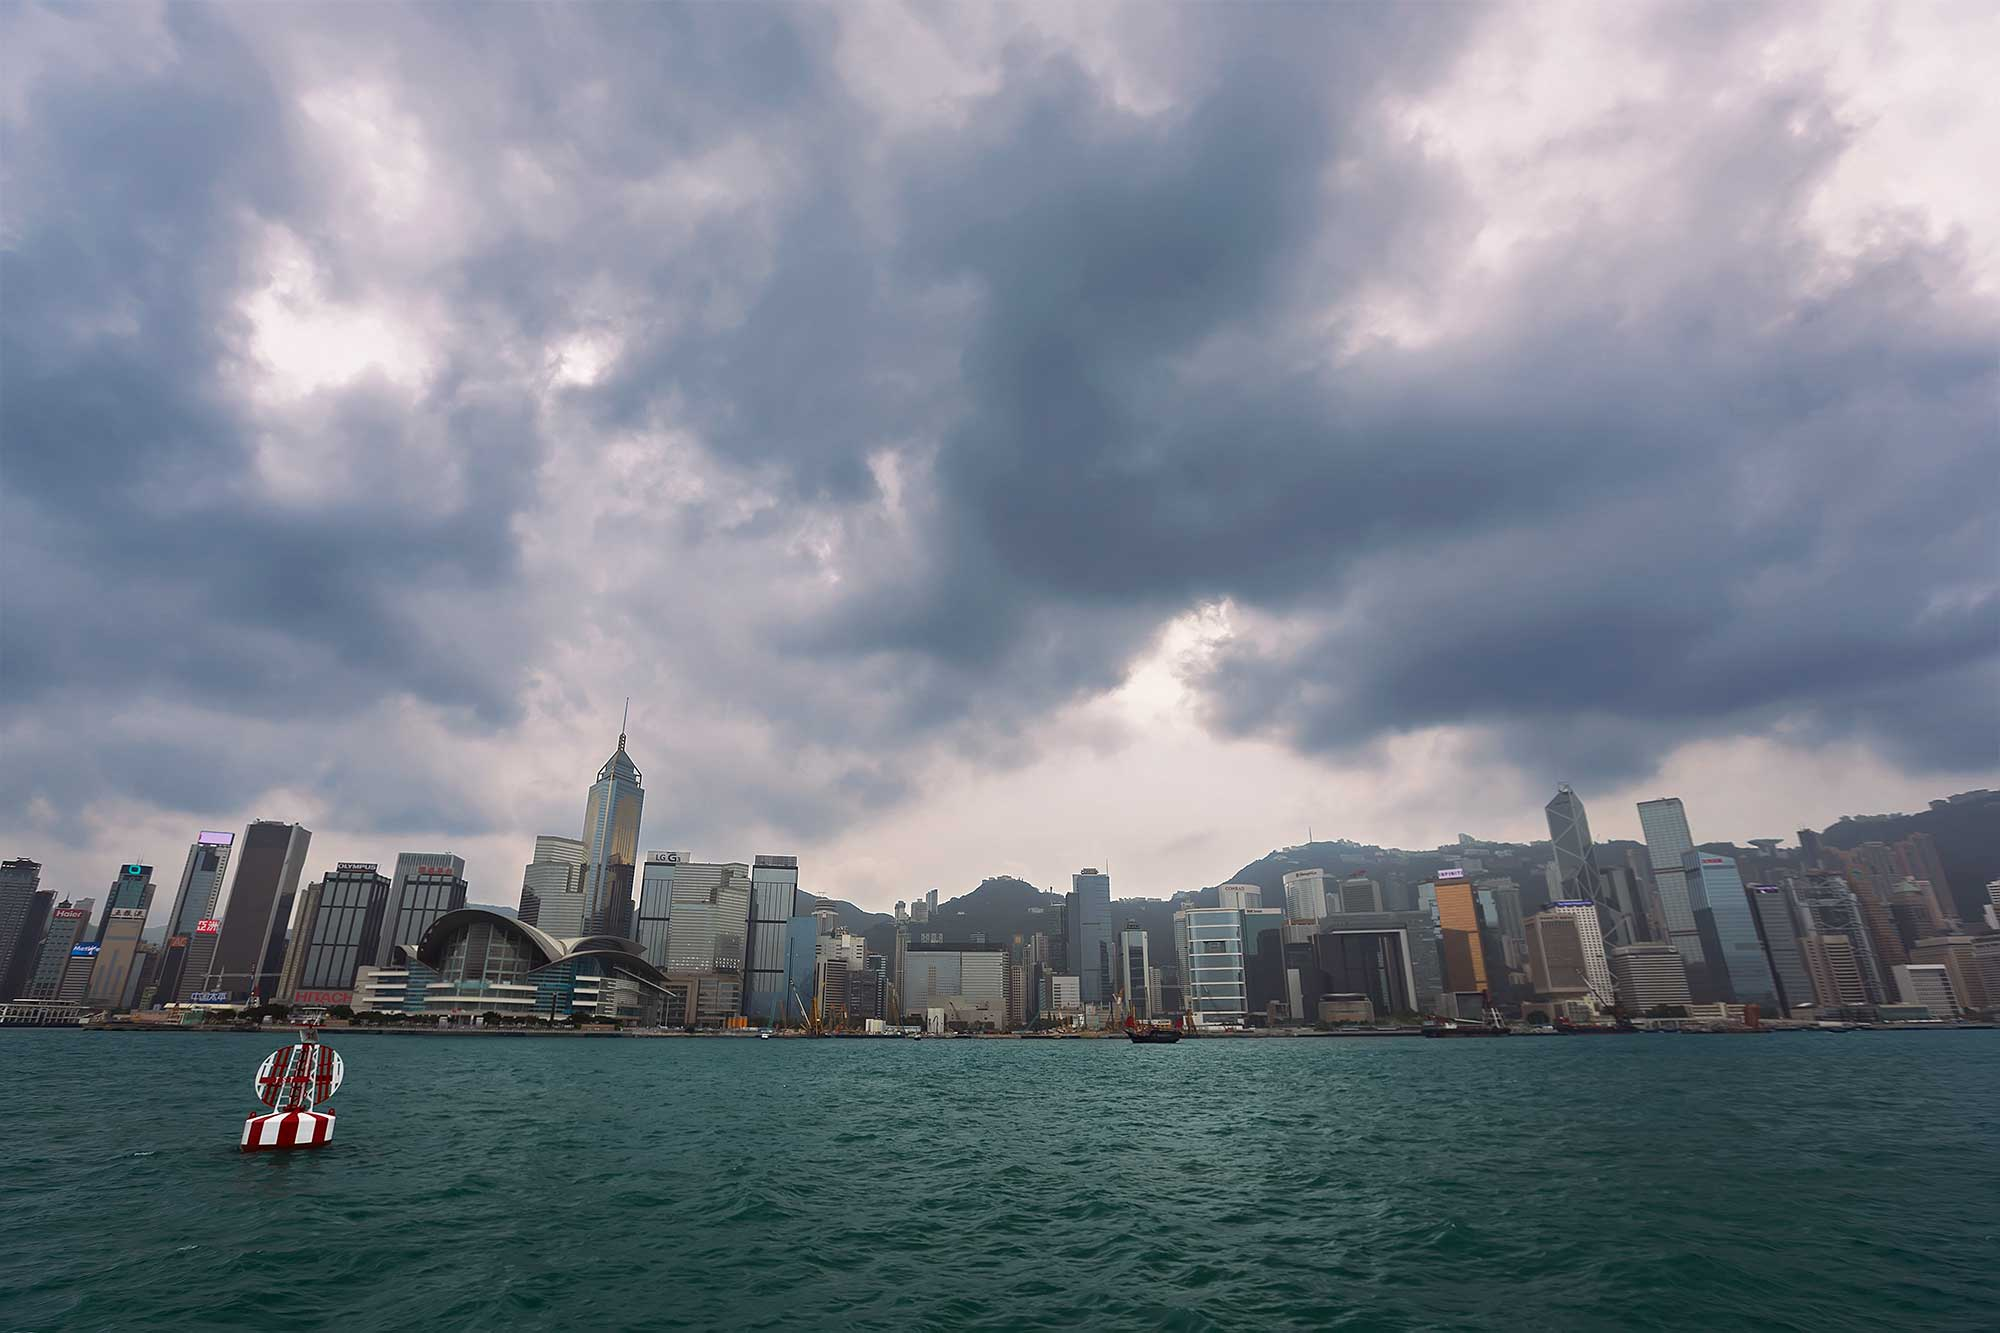 Hong Kong skyline view from the Star Ferry across Victoria Harbour. © Ulli Maier & Nisa Maier